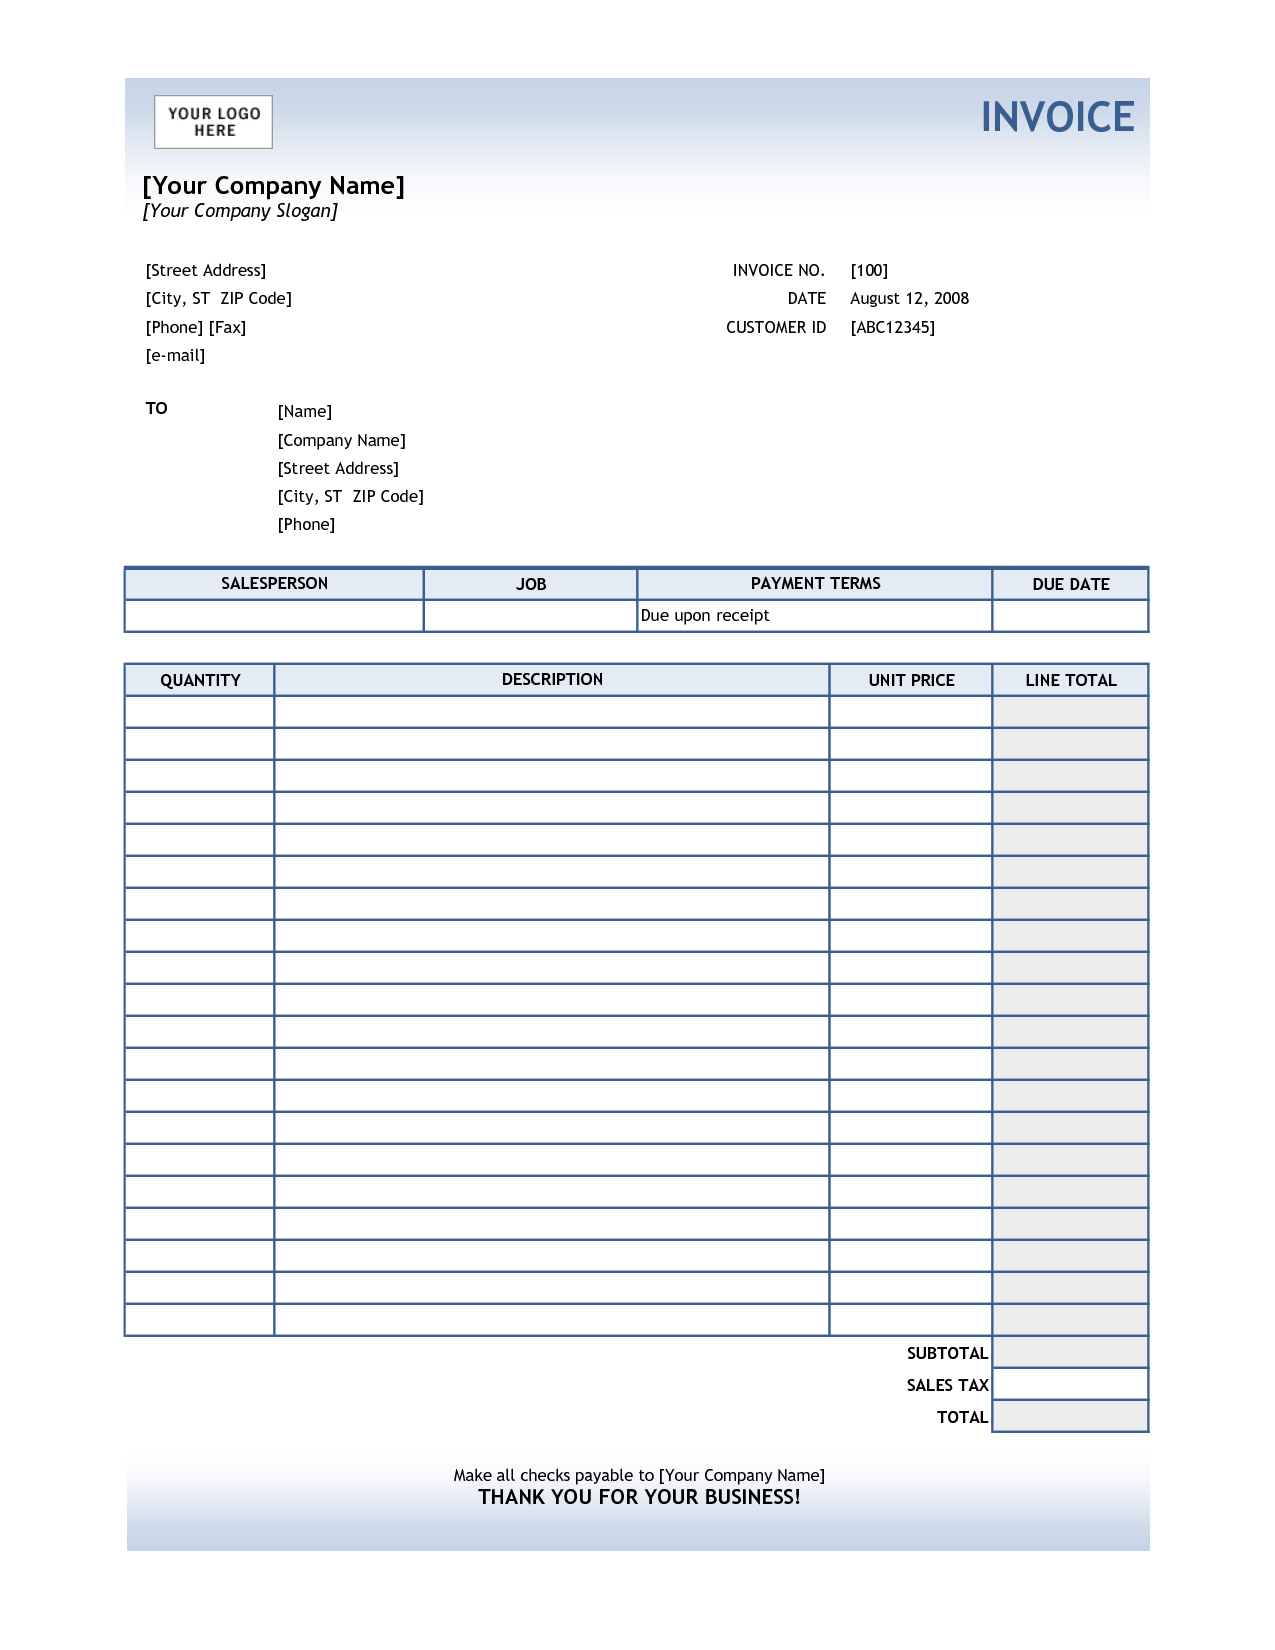 Invoices Templates for Free and Service Invoice Template Excel Invoice Example